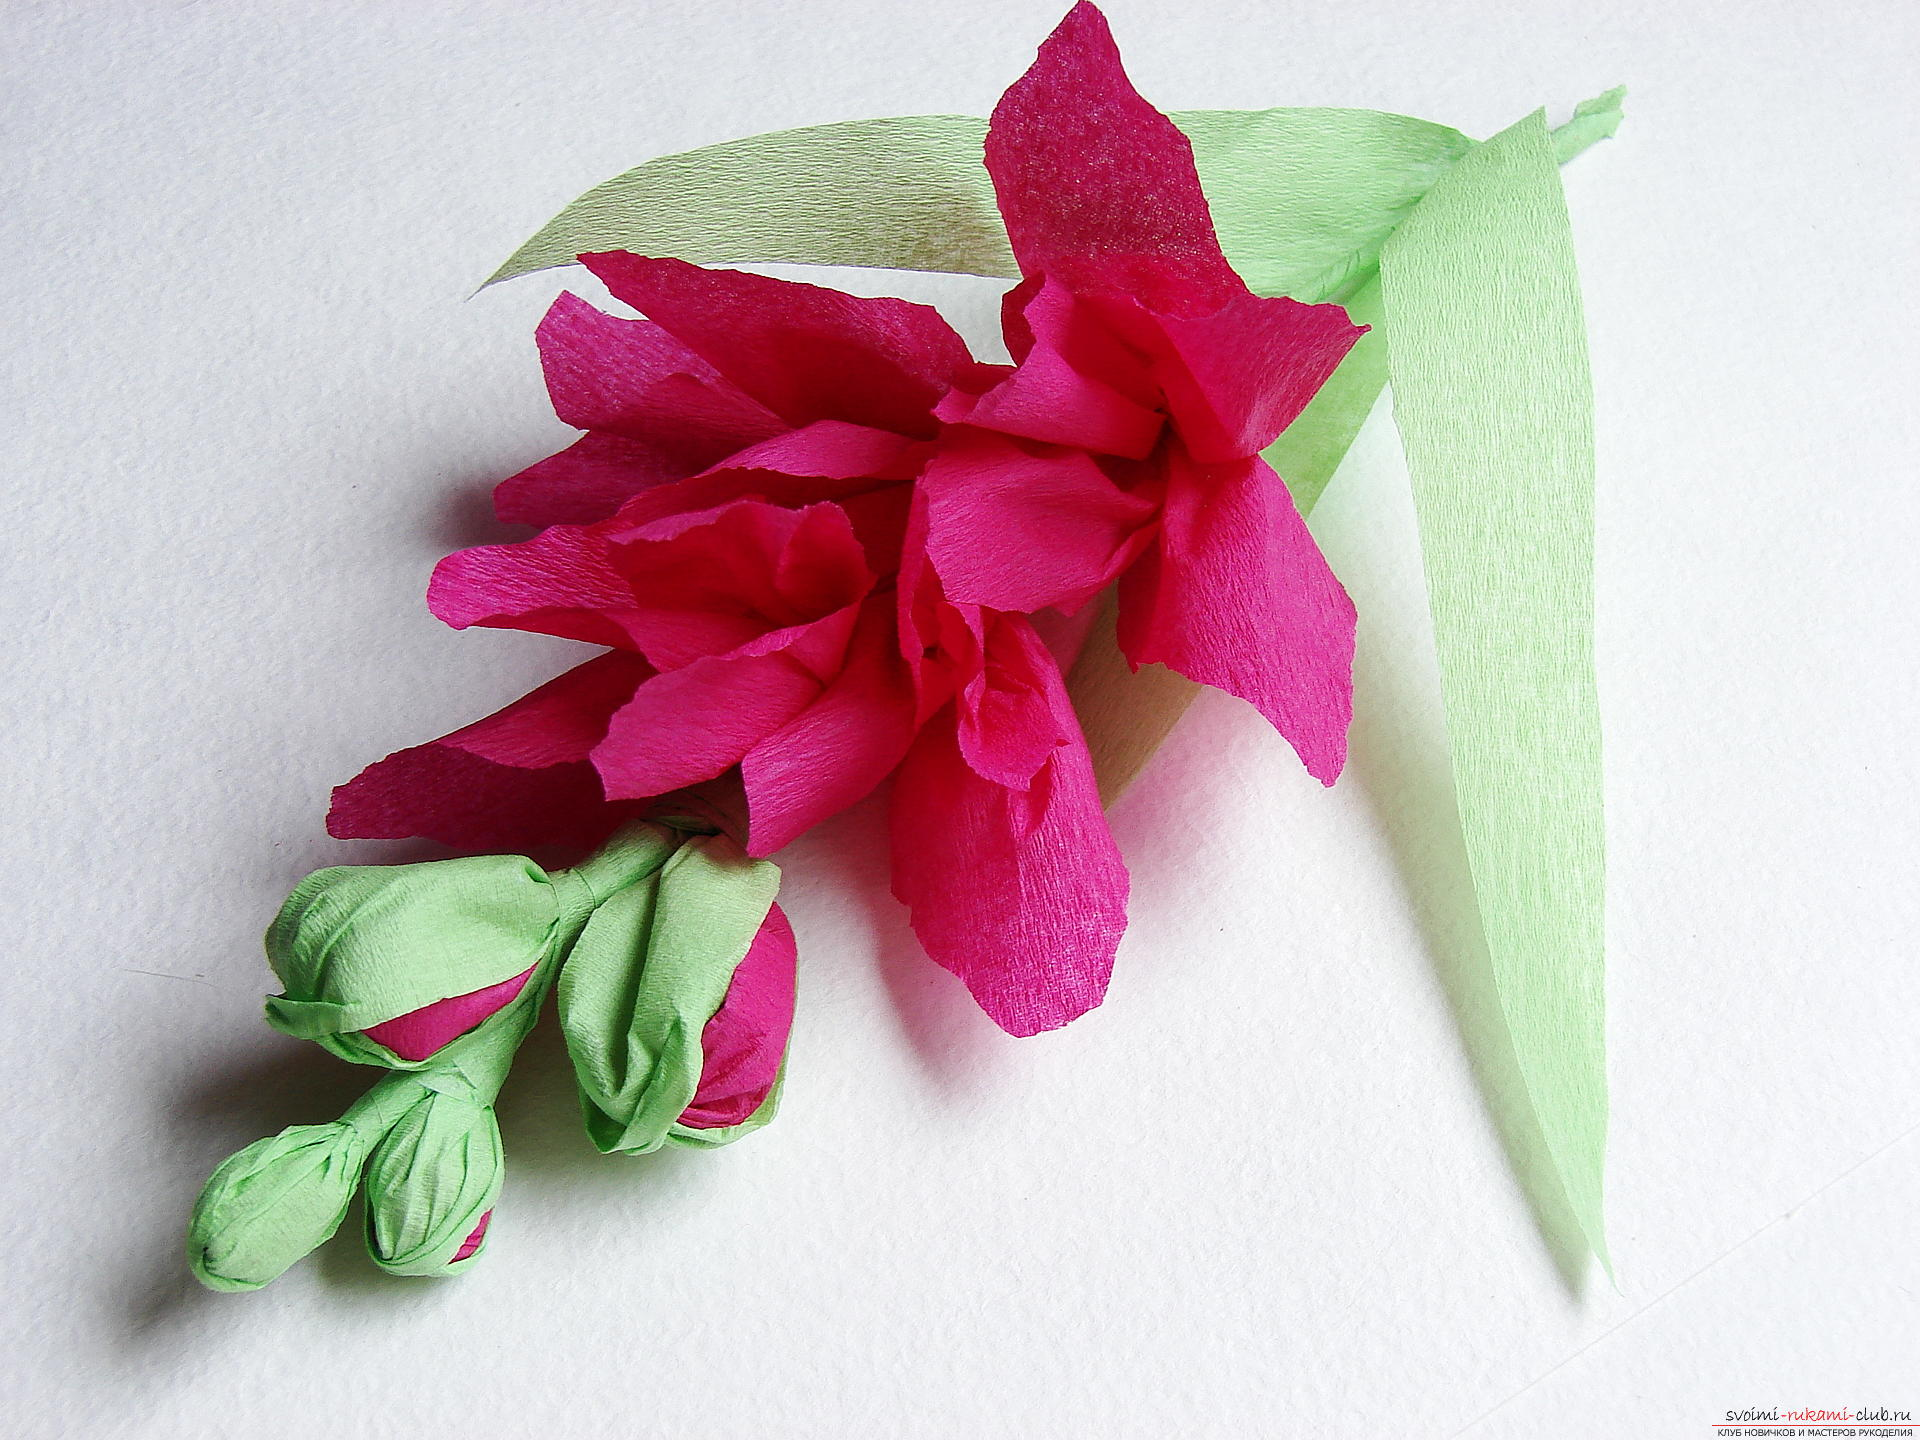 This master class will teach you how to make gladioli flowers from paper by yourself. Picture # 32